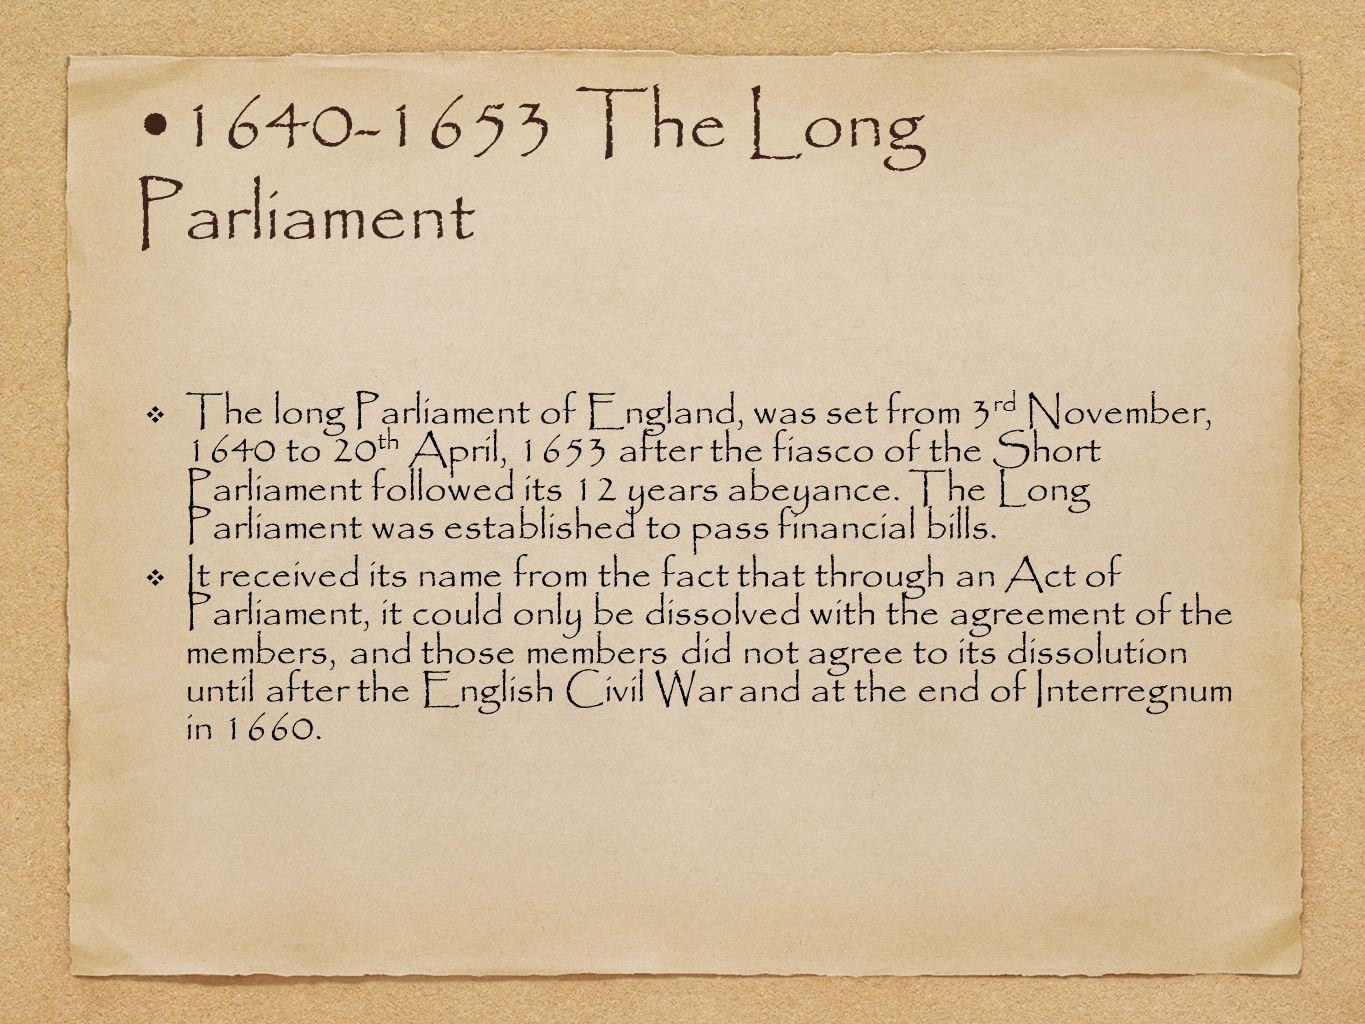 1640-1653 The Long Parliament ❖ The long Parliament of England, was set from 3 rd November, 1640 to 20 th April, 1653 after the fiasco of the Short Parliament followed its 12 years abeyance.